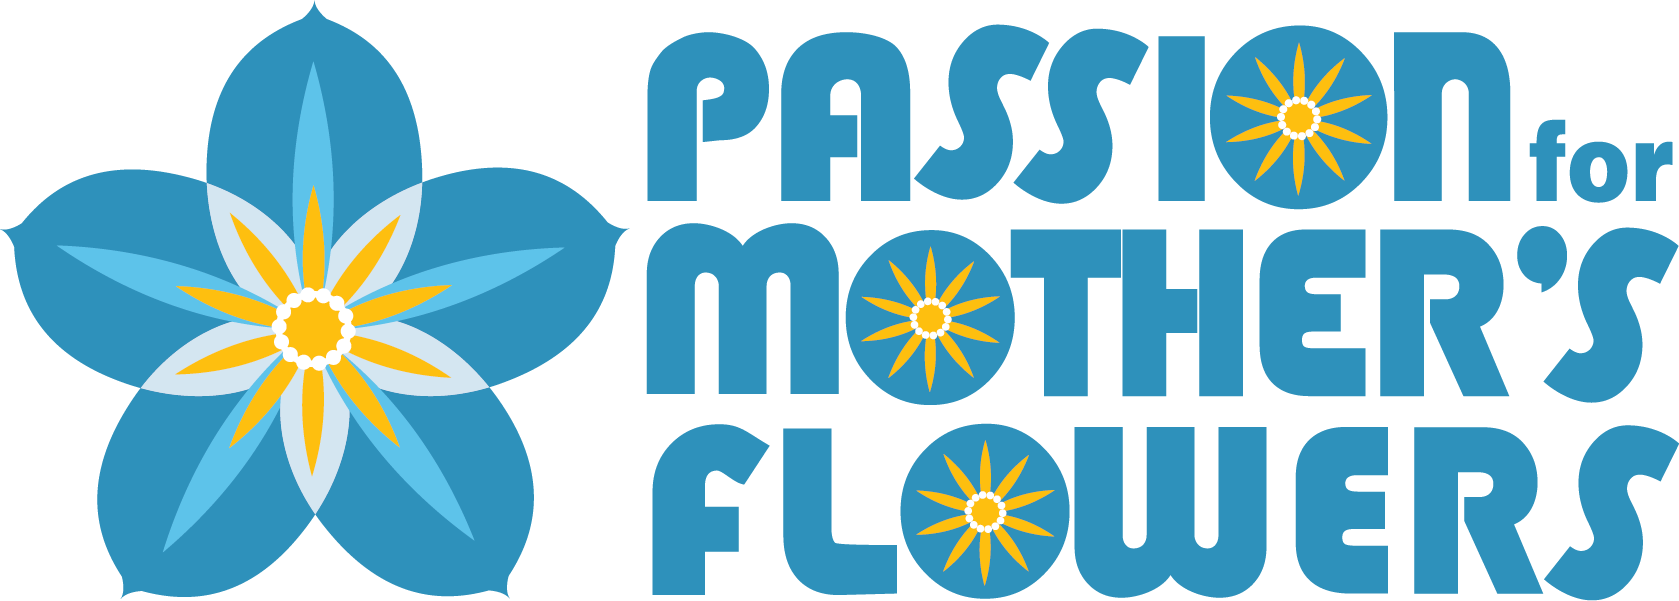 Passion For Mother's Flowers